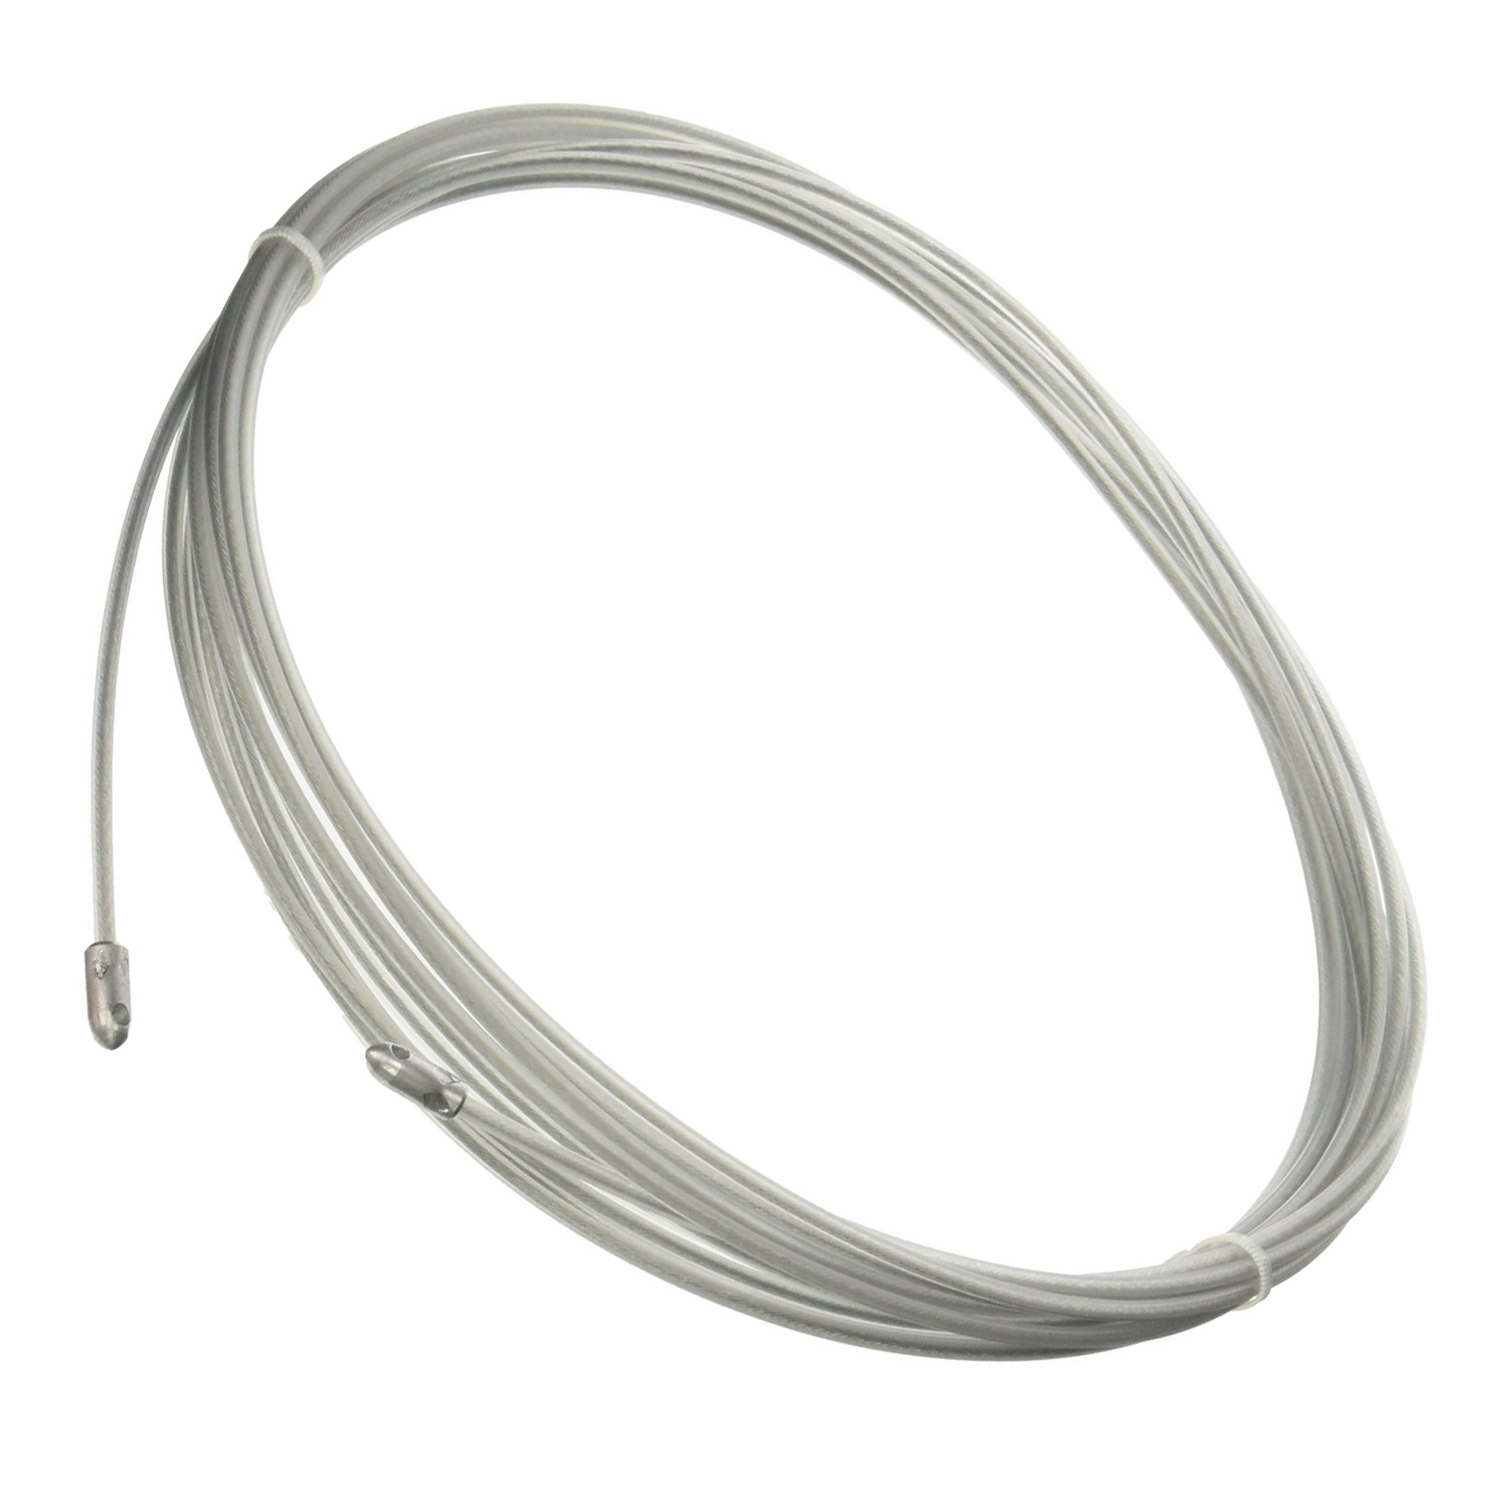 WSFS Hot 10M 33Ft Electrical Wire Threader Cable Running Rods Fish ...